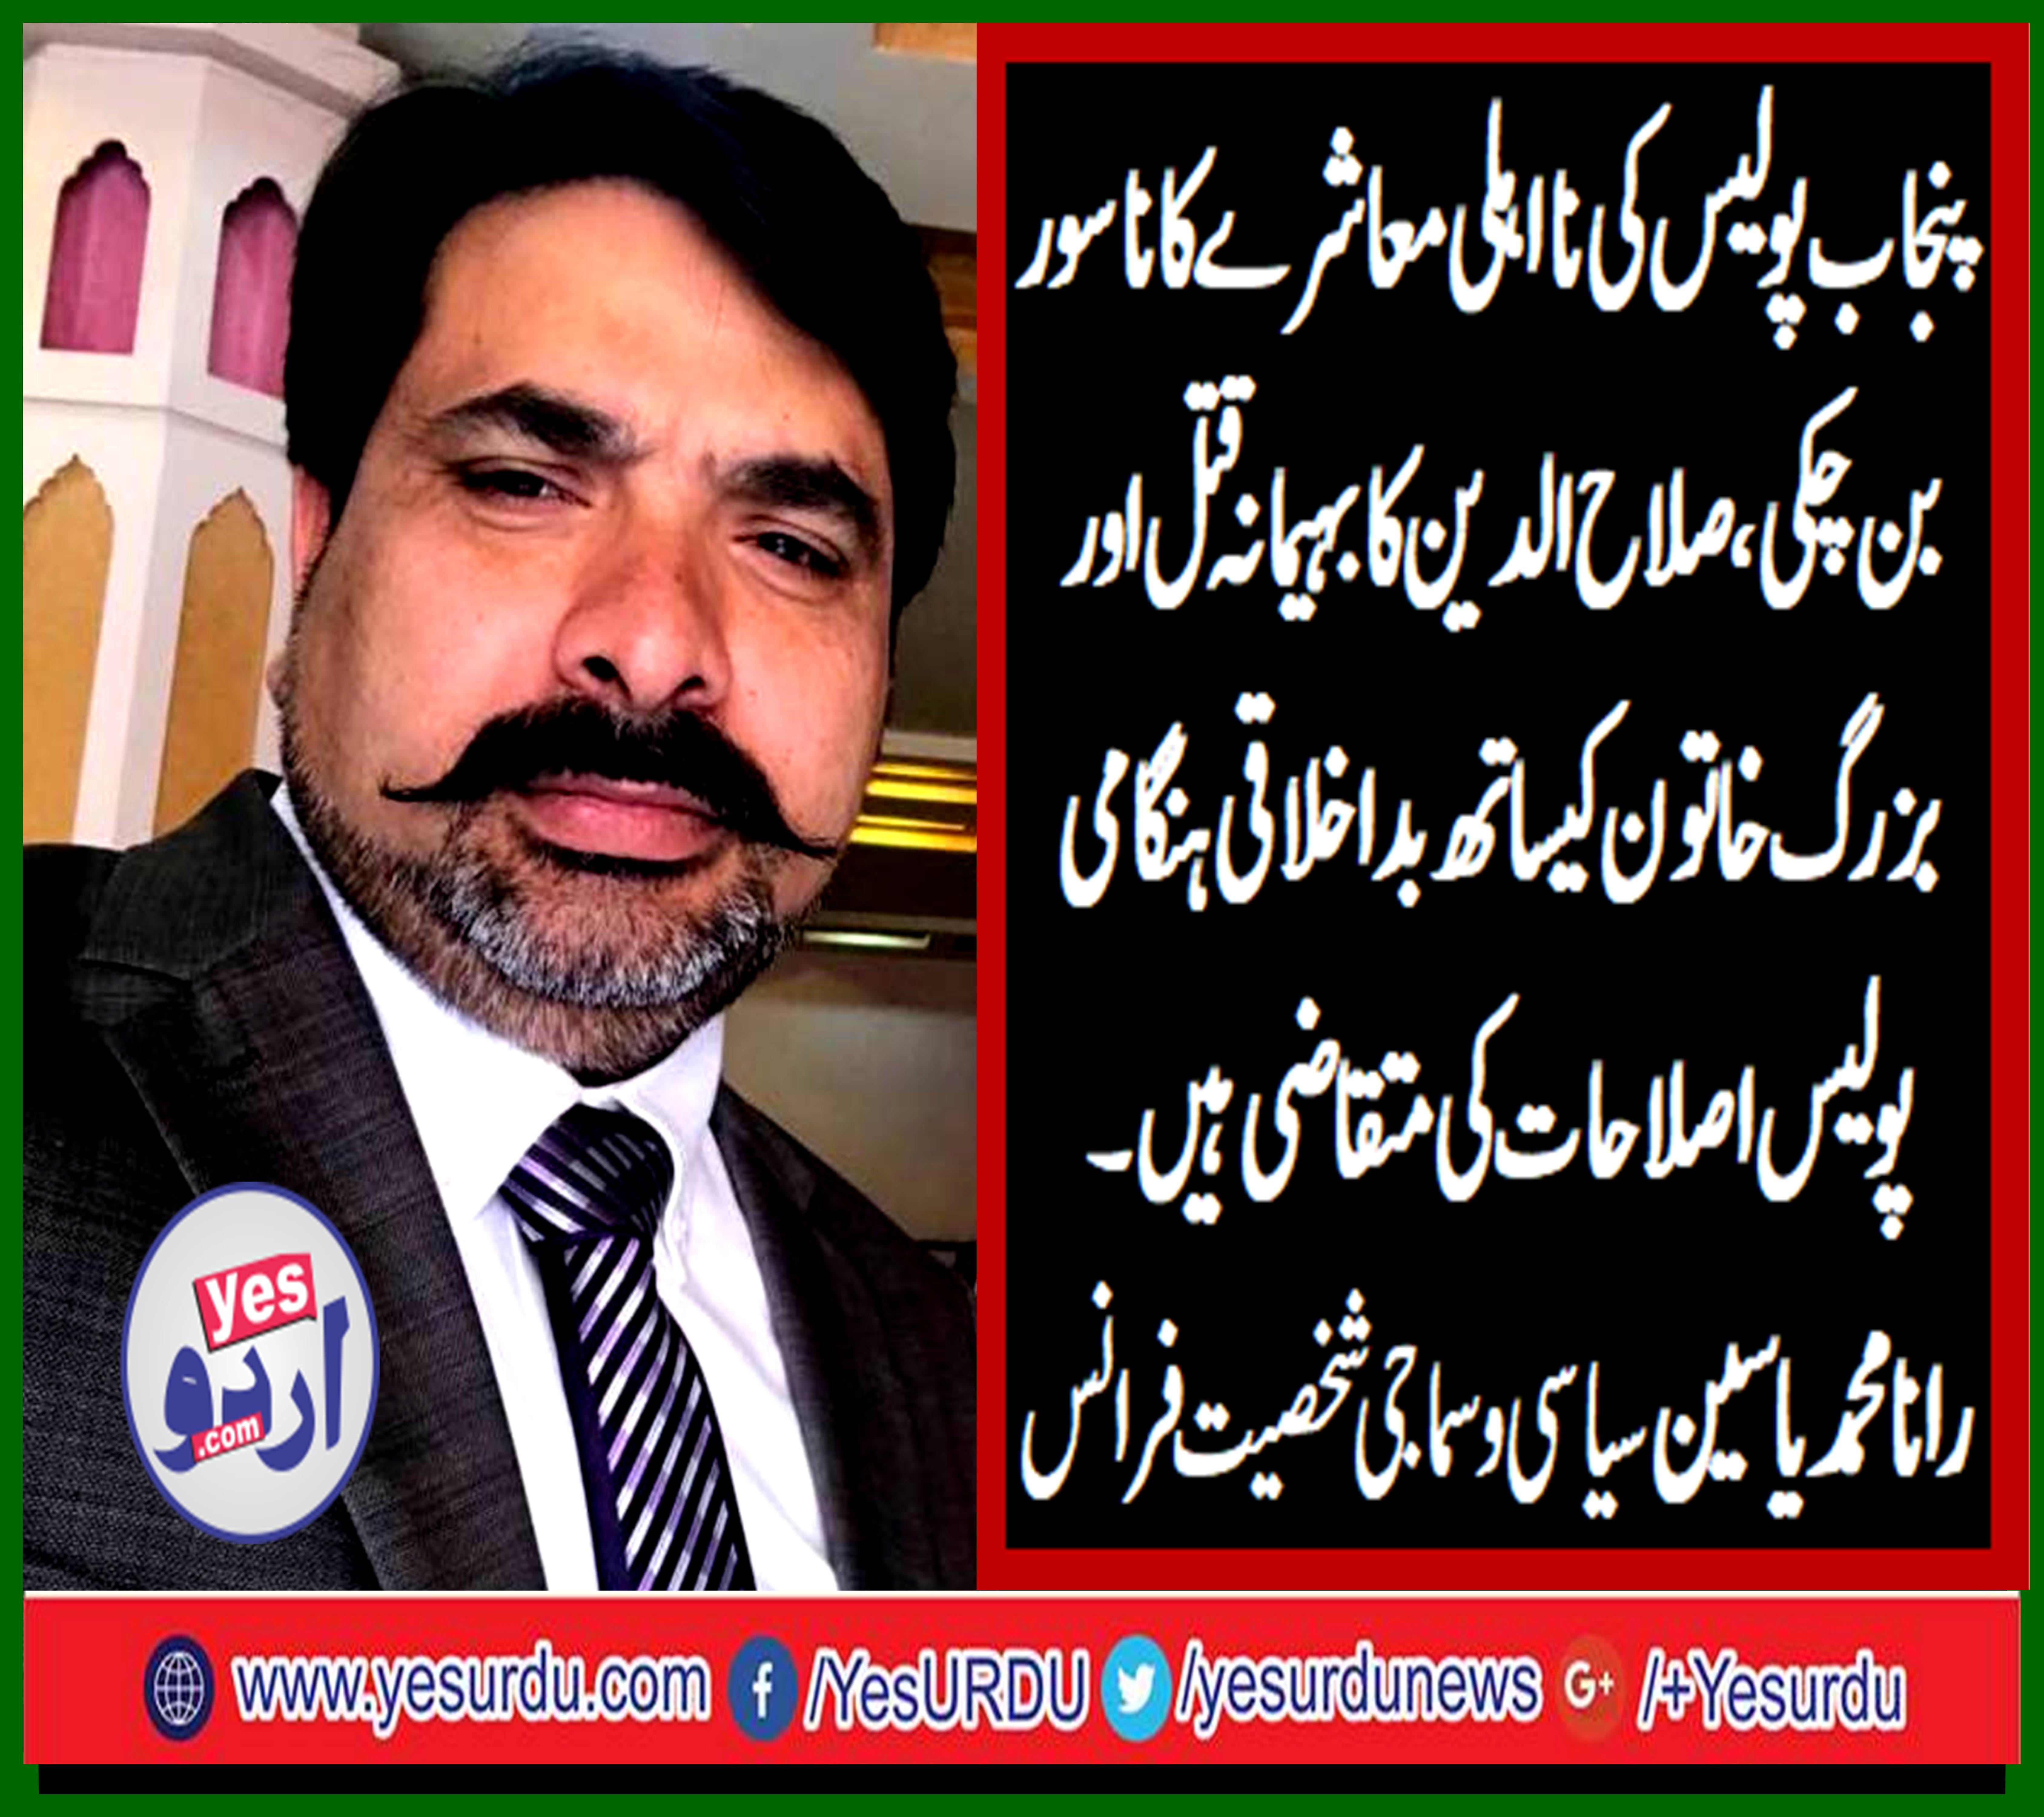 RANA MUHAMMAD YASEEN, SOCIAL, PERSONALITY, FRANCE, SAYS, POLICE, FORMATION, IS, NEED, OF, TIME, IN, PAKISTAN